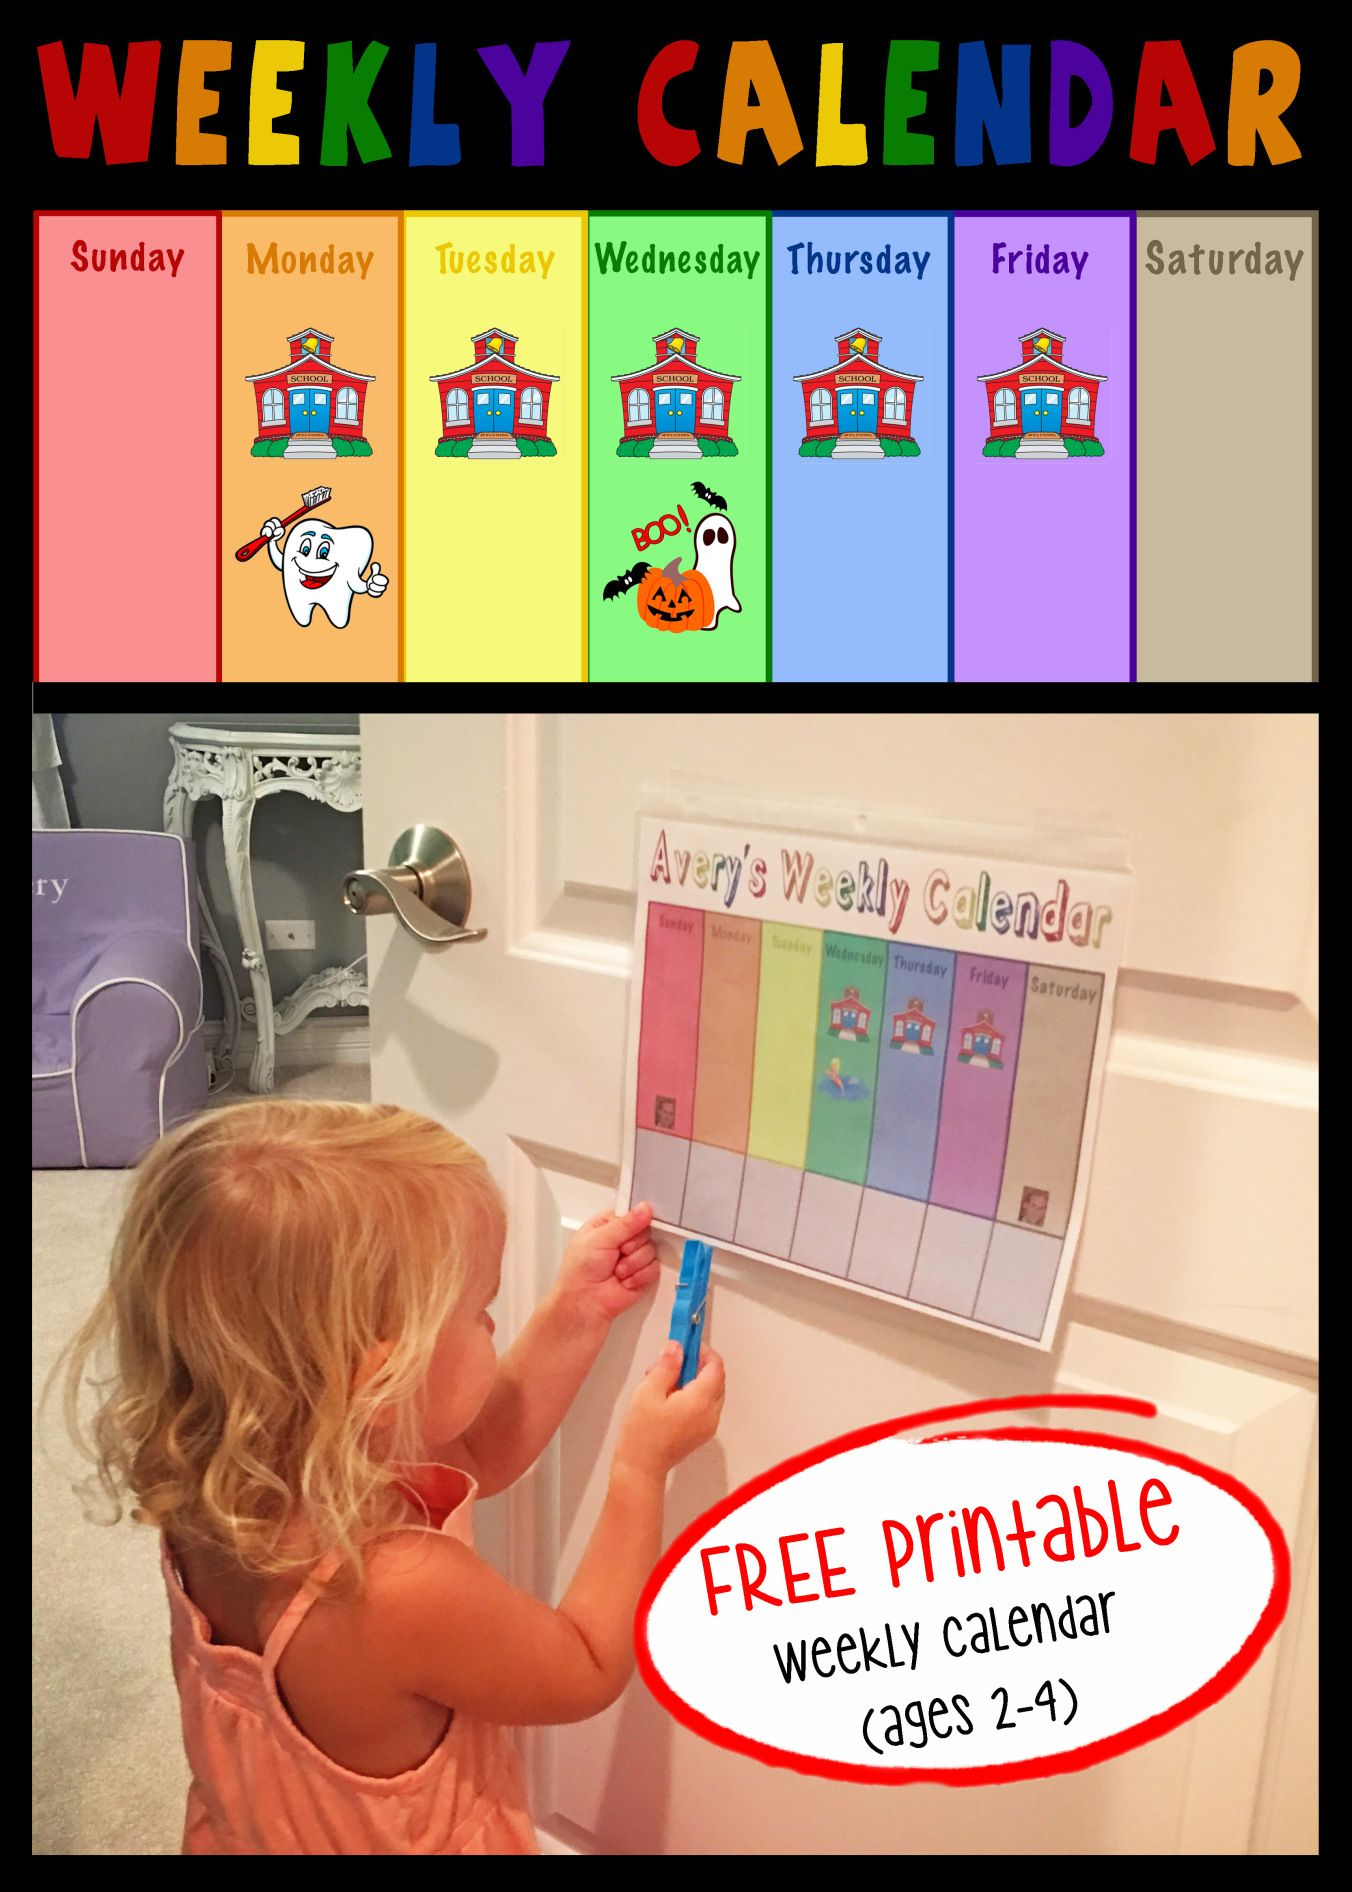 Kids Calendar With Activity Stickers : Free printable toddler weekly calendar projectsinparenting